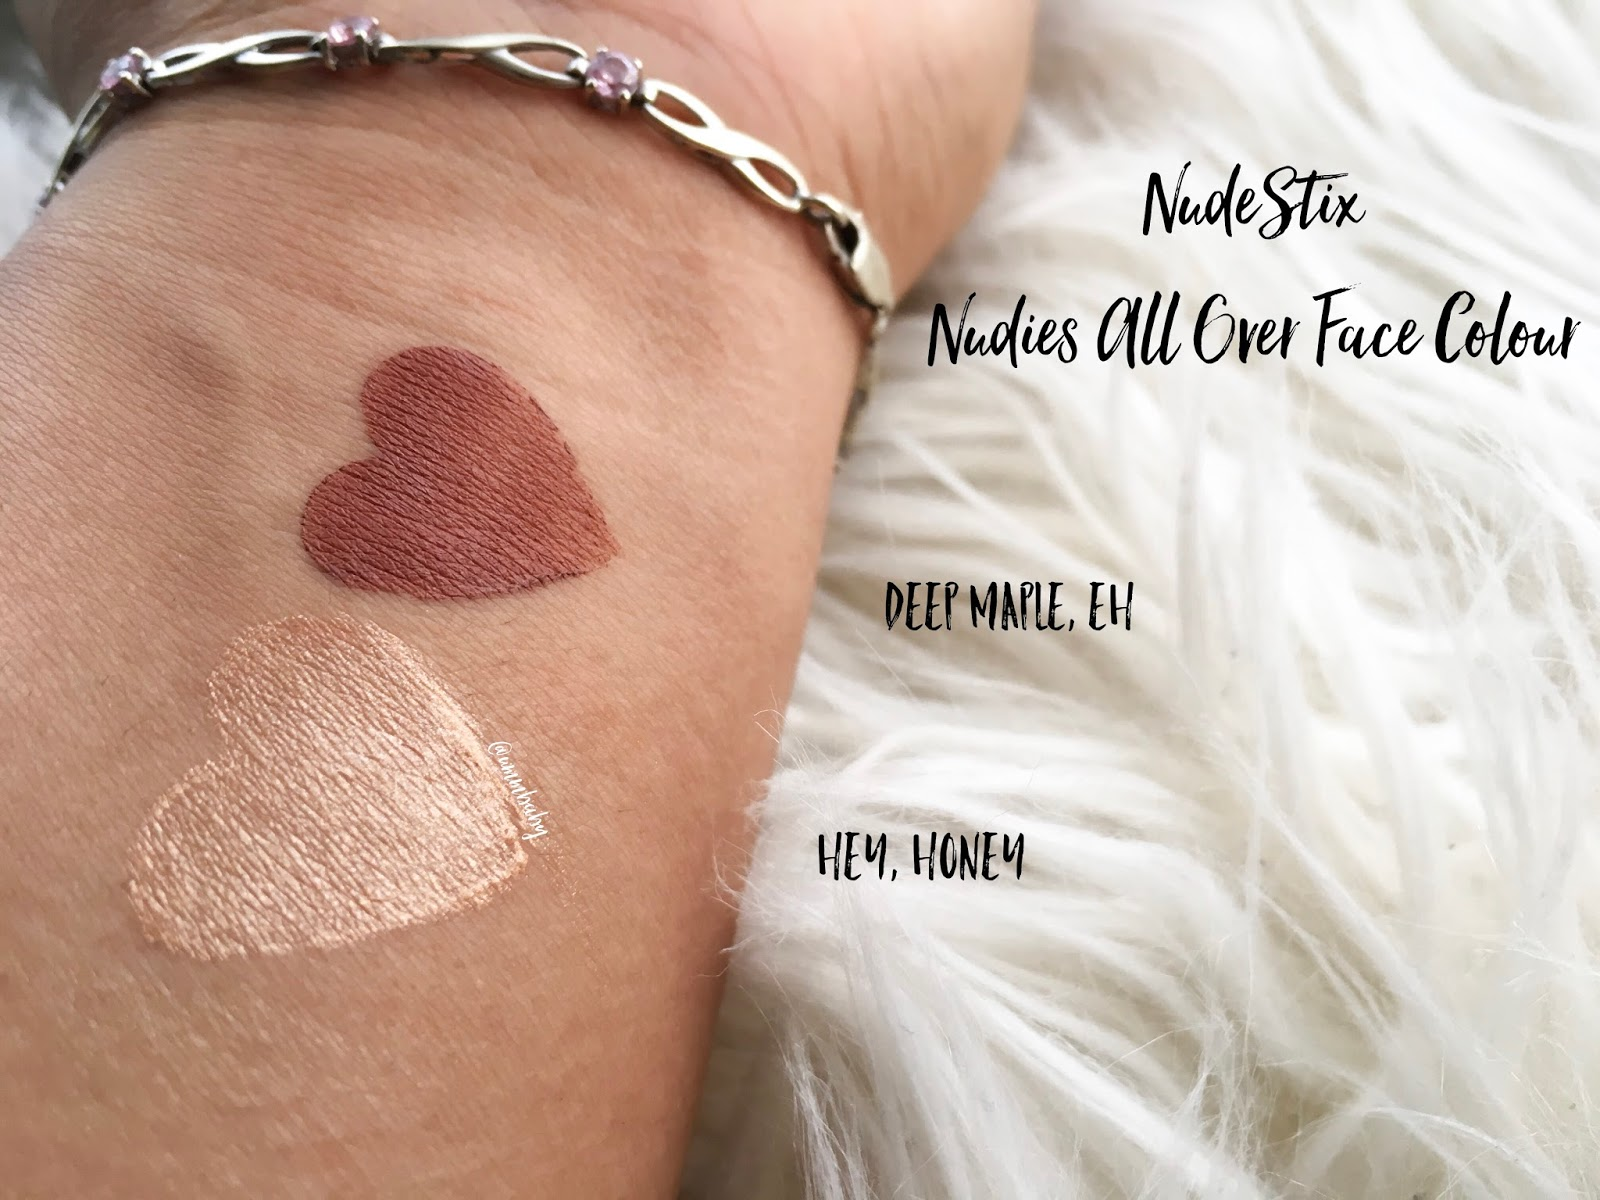 nudestix nudies swatches, medium skin swatches, nc40 swatches, nudestix nudies all over face colour swatches, nudestix nudies hey honey swatch, nudestix nudies deep maple eh swatch